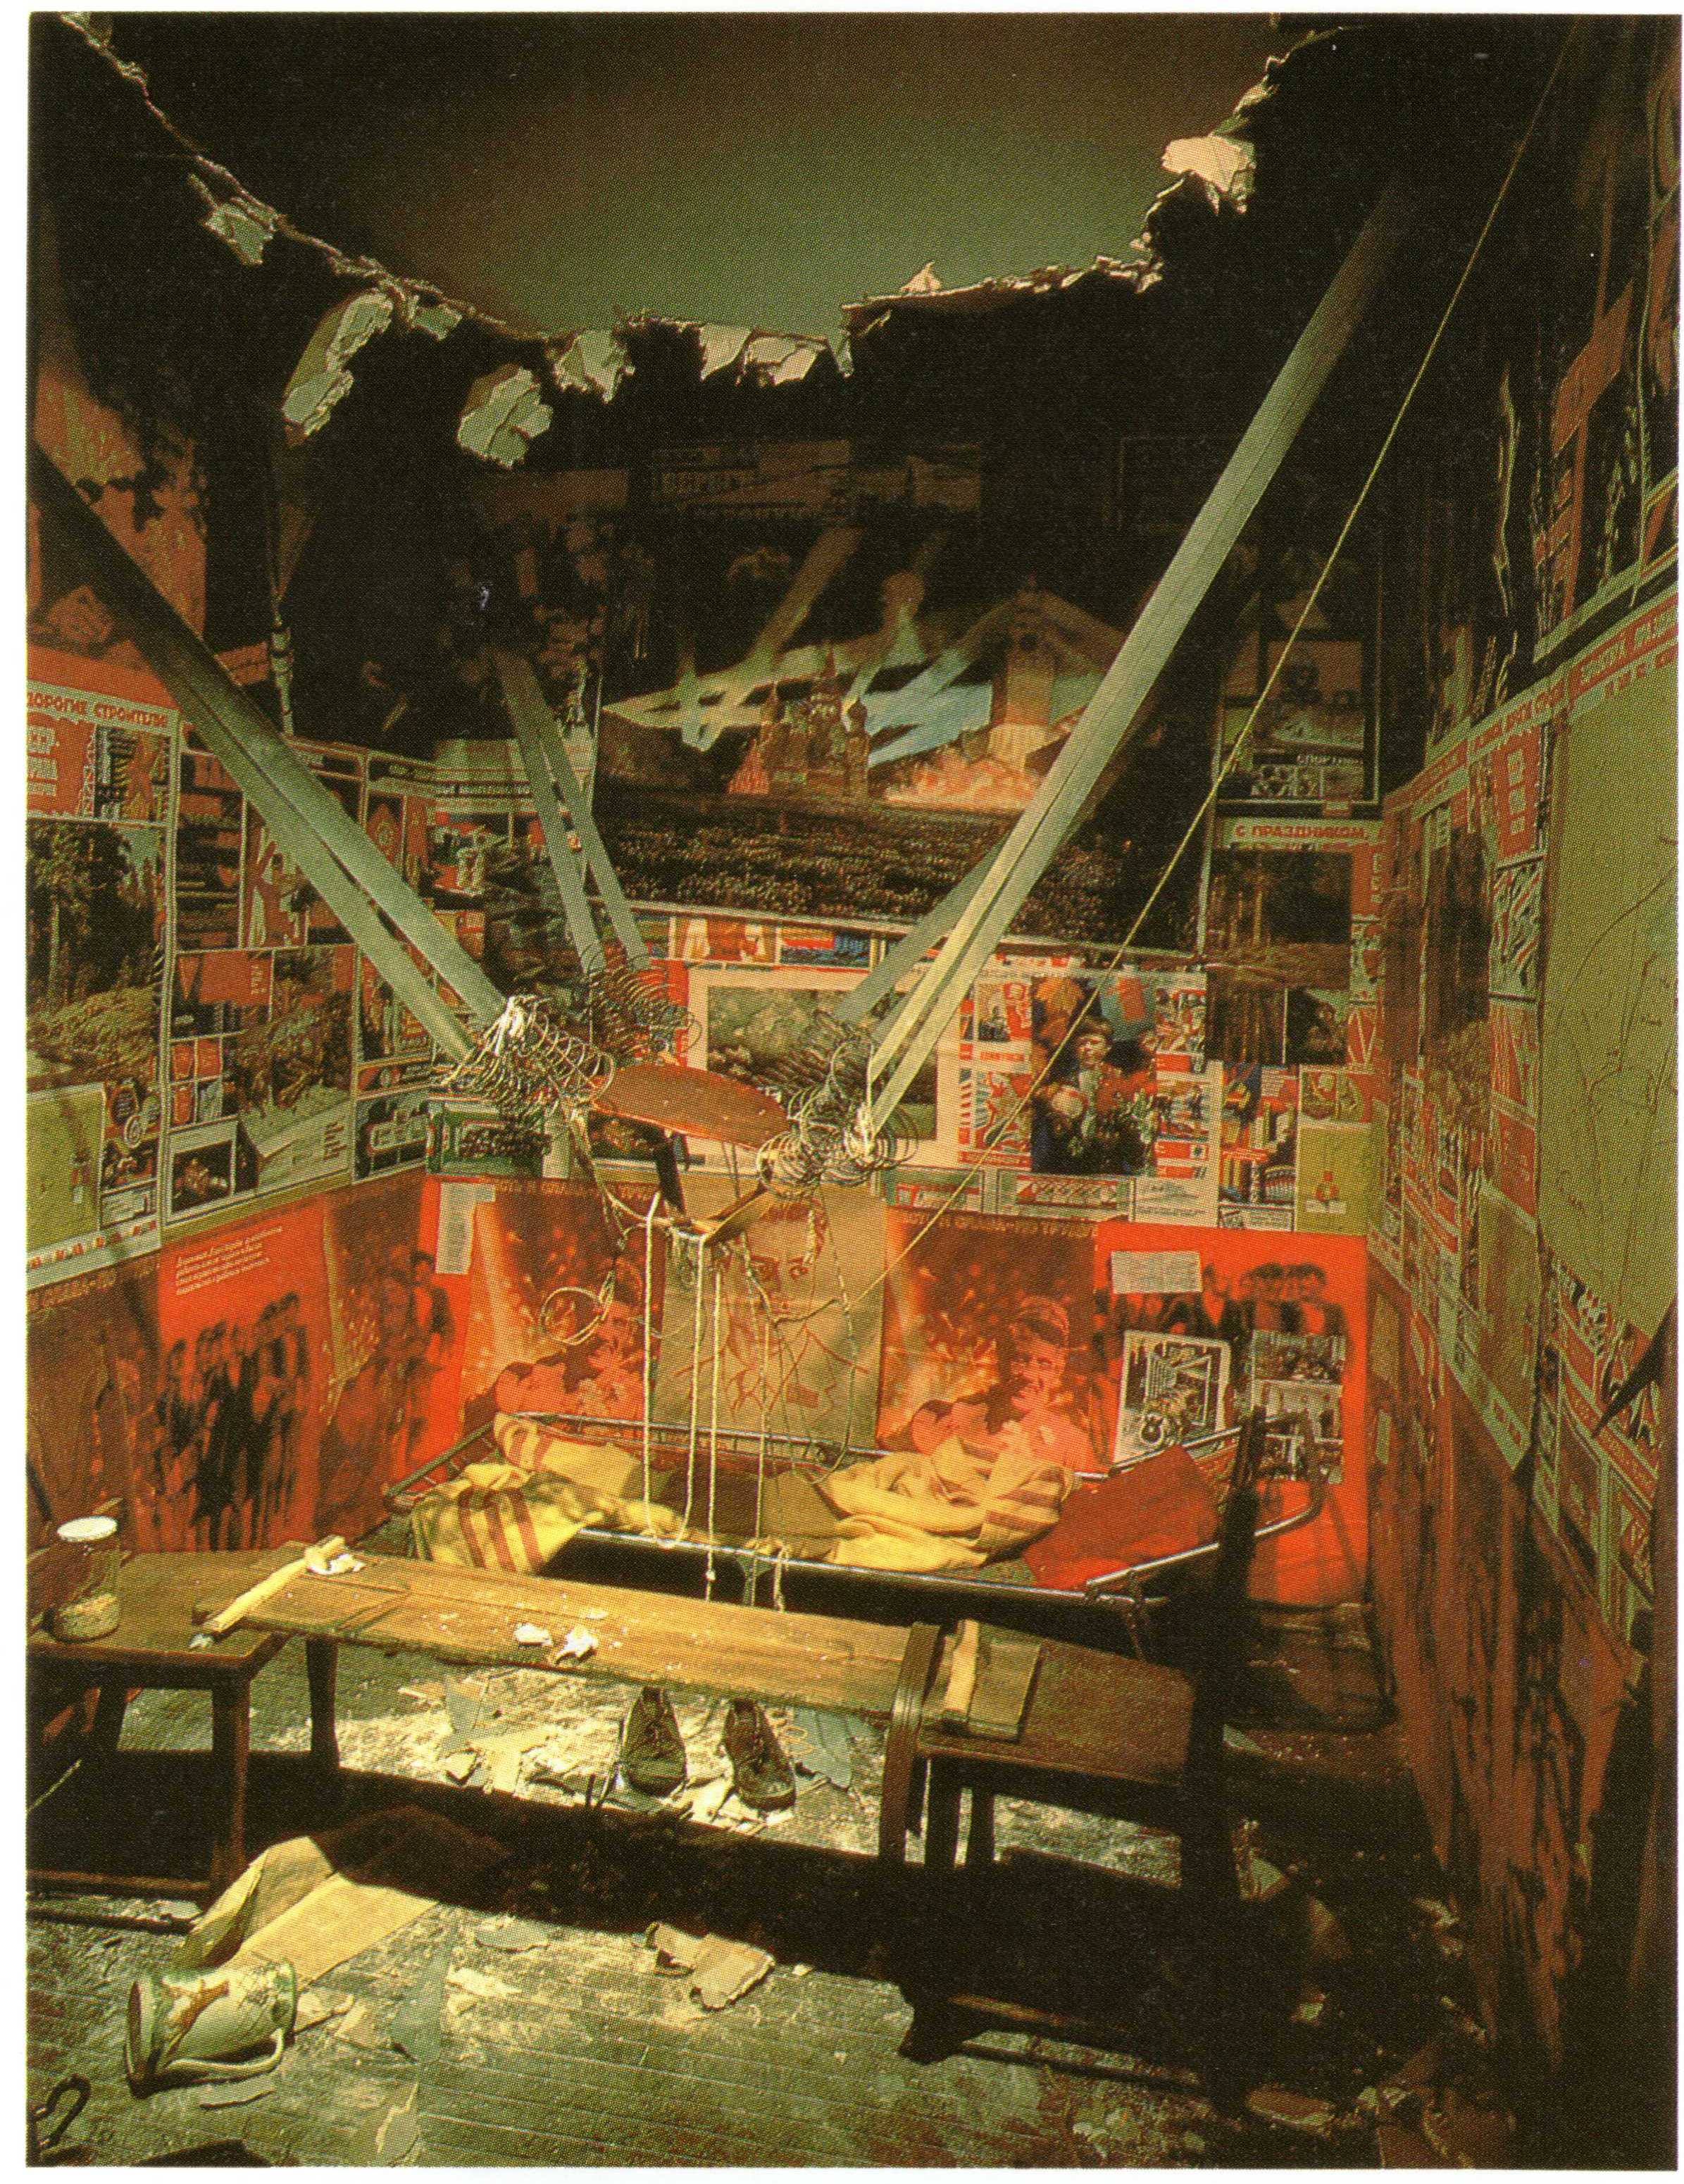 Ilya Kabakov, The Man Who Flew Into Space From His Apartment (1989-1990)